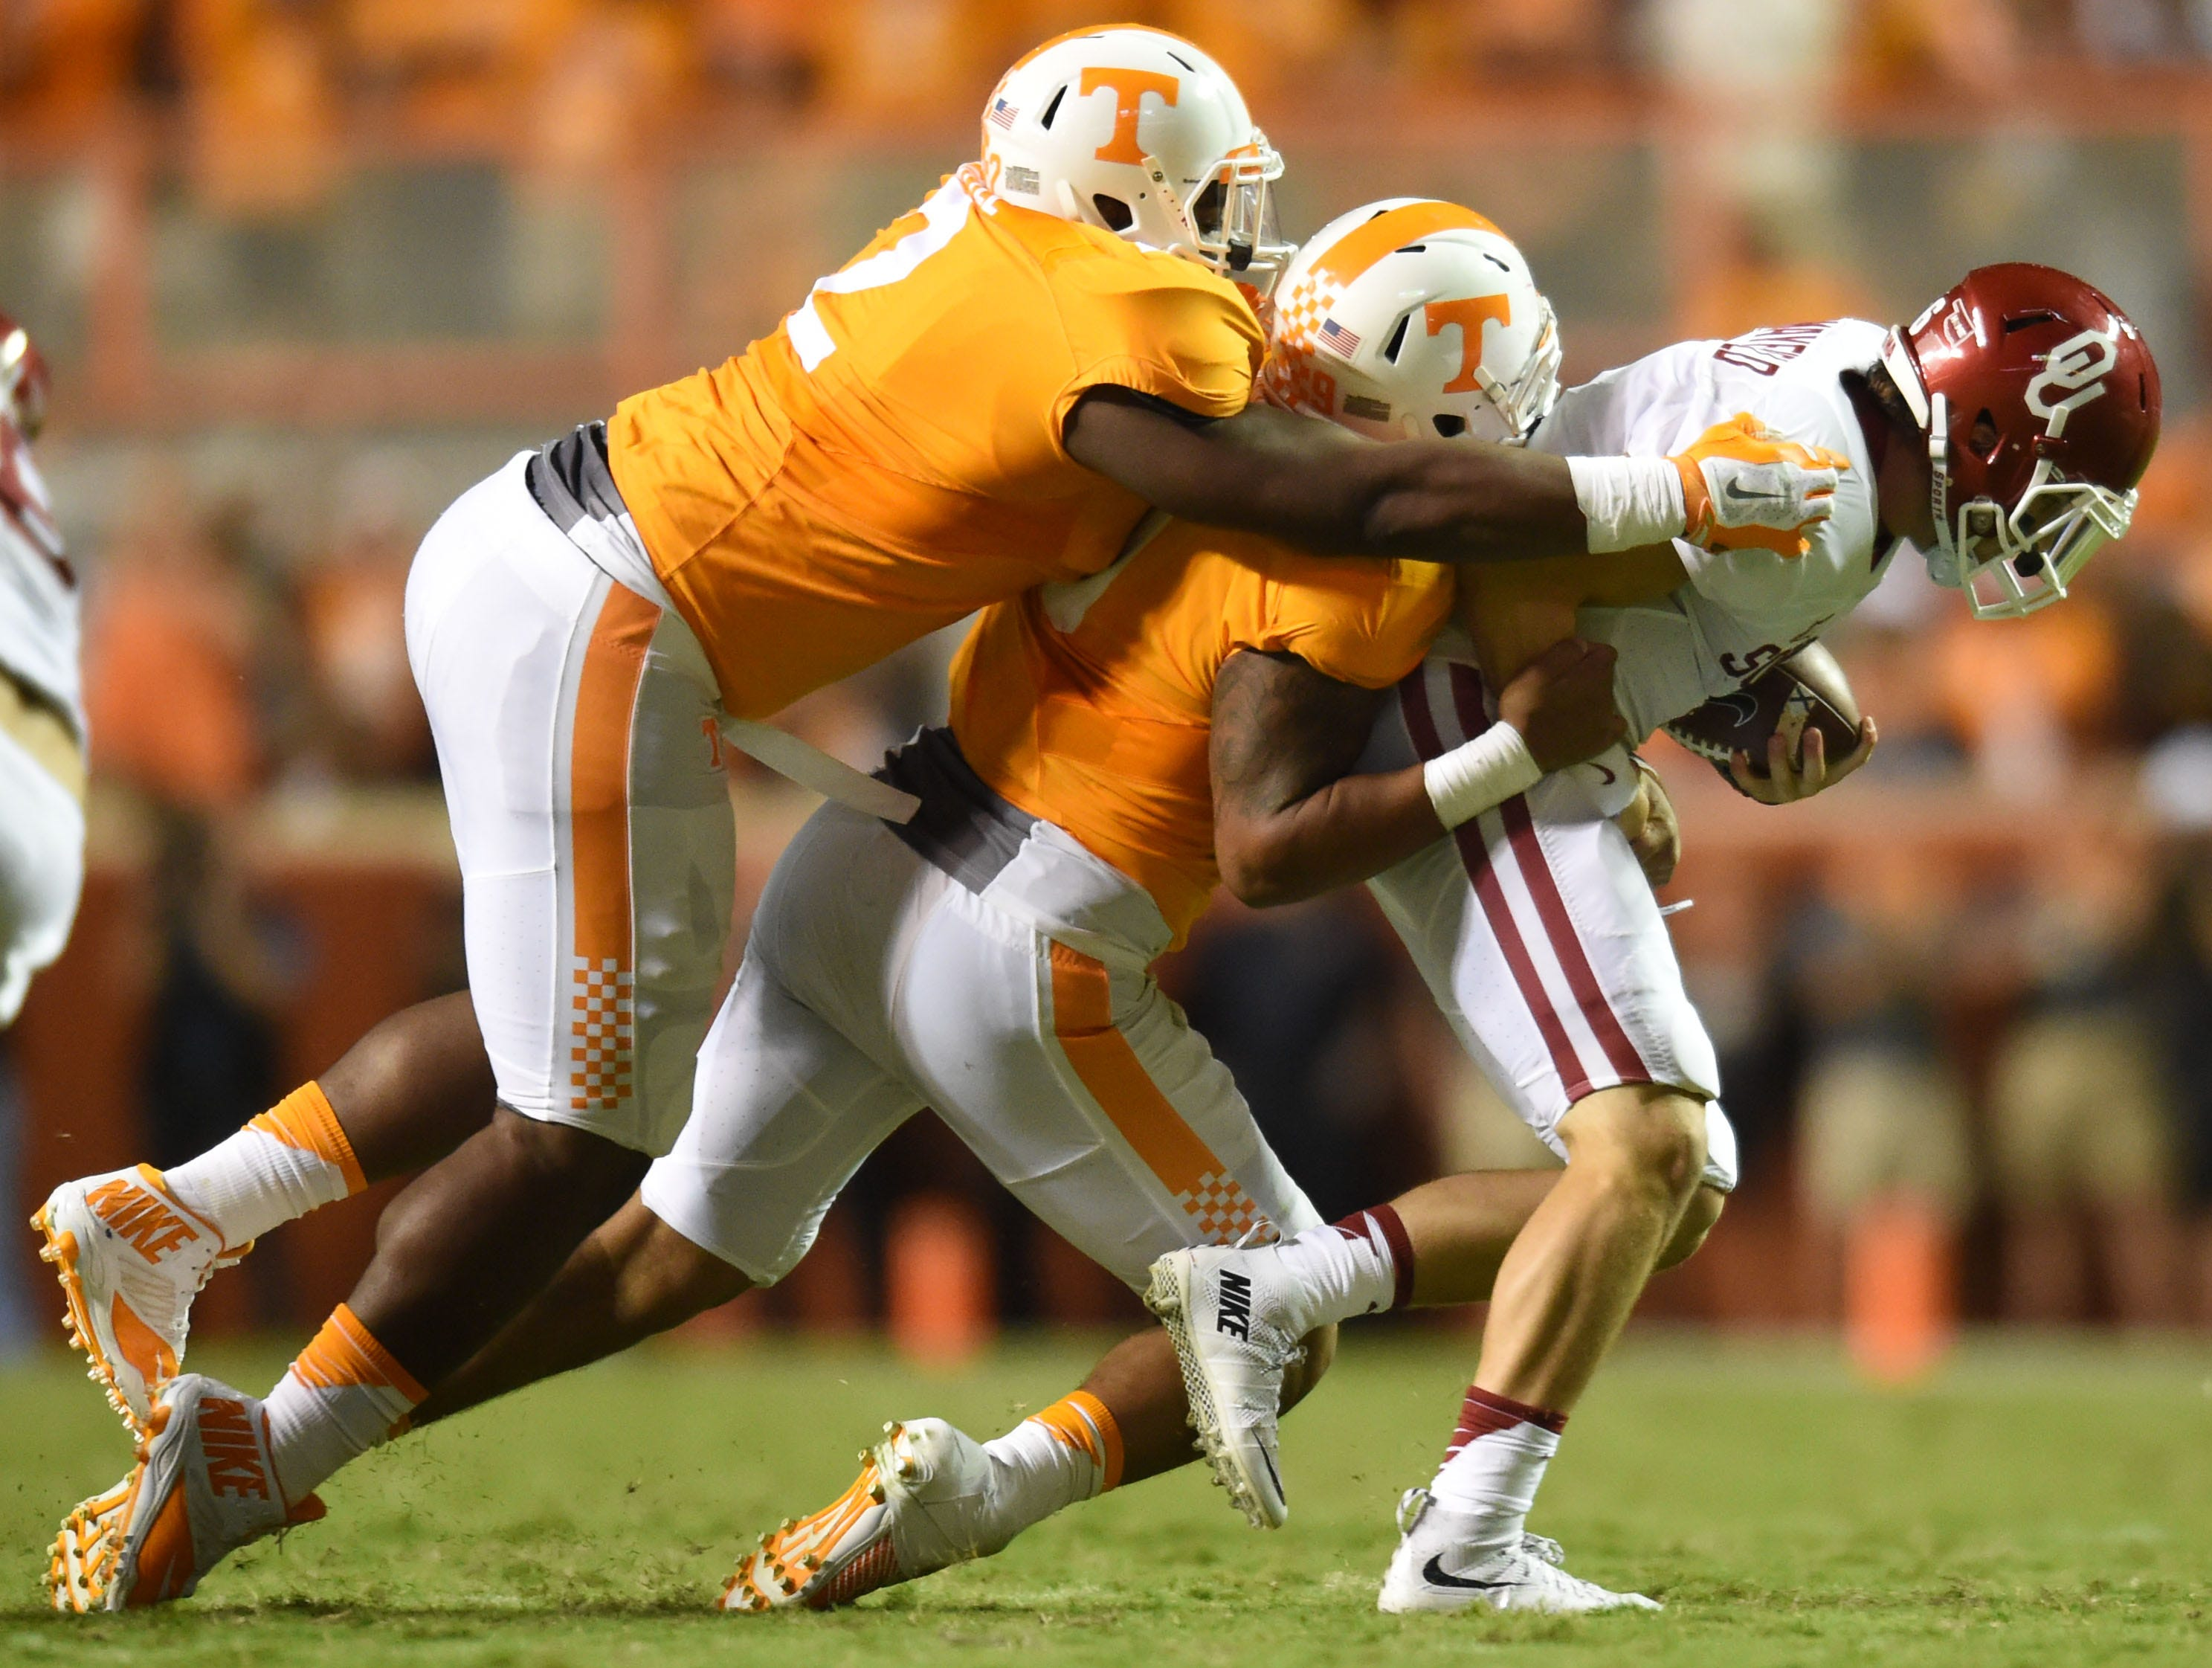 Tennessee defensive end Derek Barnett (9) and Tennessee defensive lineman Shy Tuttle (2) stop Oklahoma quarterback Baker Mayfield (6) during the second half at Neyland Stadium on Saturday, Sept. 12, 2015 in Knoxville, Tenn.